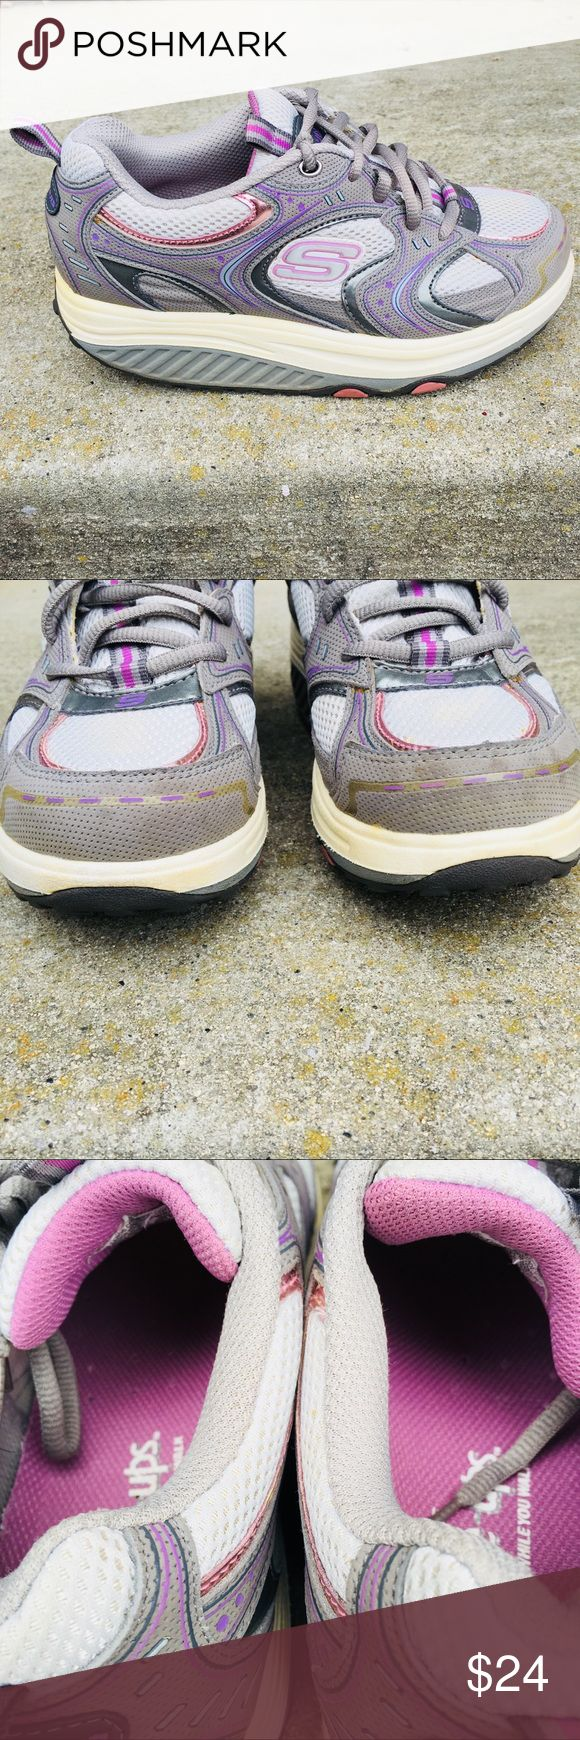 """Skechers Shape Ups Fitness Purple Gray Running Skechers Shape Ups Fitness Running Walking Synthetic Mesh Toe to Heel:9 1/2 """"Width Approx: 3 3/4 """"Heel Height: 1 1/2  """" Great pre-owned condition. Shoes show some wear from normal used and slightly stain on tip of shoes see last pic.  Please view all photos for details carefully before purchased. These are part of the description and contact if you have further questions.  We washed, scrubbed, cleaned, and disinfected before list for sale.  From…"""